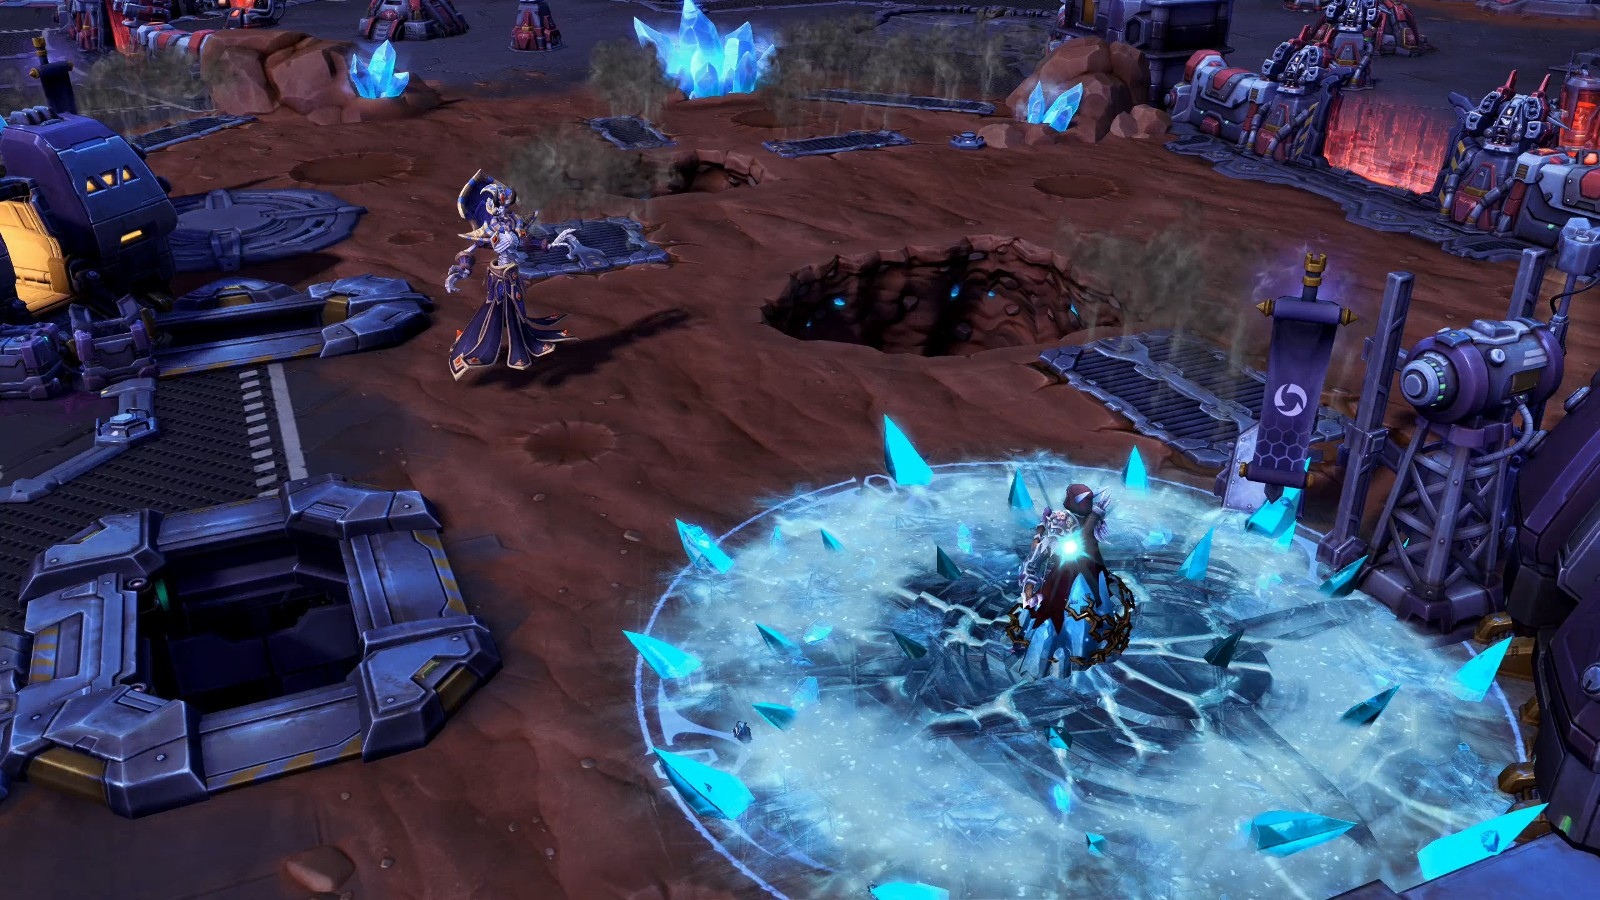 Heroes Of The Storm Kel Thuzad Full Talents And Abilities Revealed Inven Global Additionally, chains of kel'thuzad deals up to 270 bonus damage to heroes' shields. kel thuzad full talents and abilities